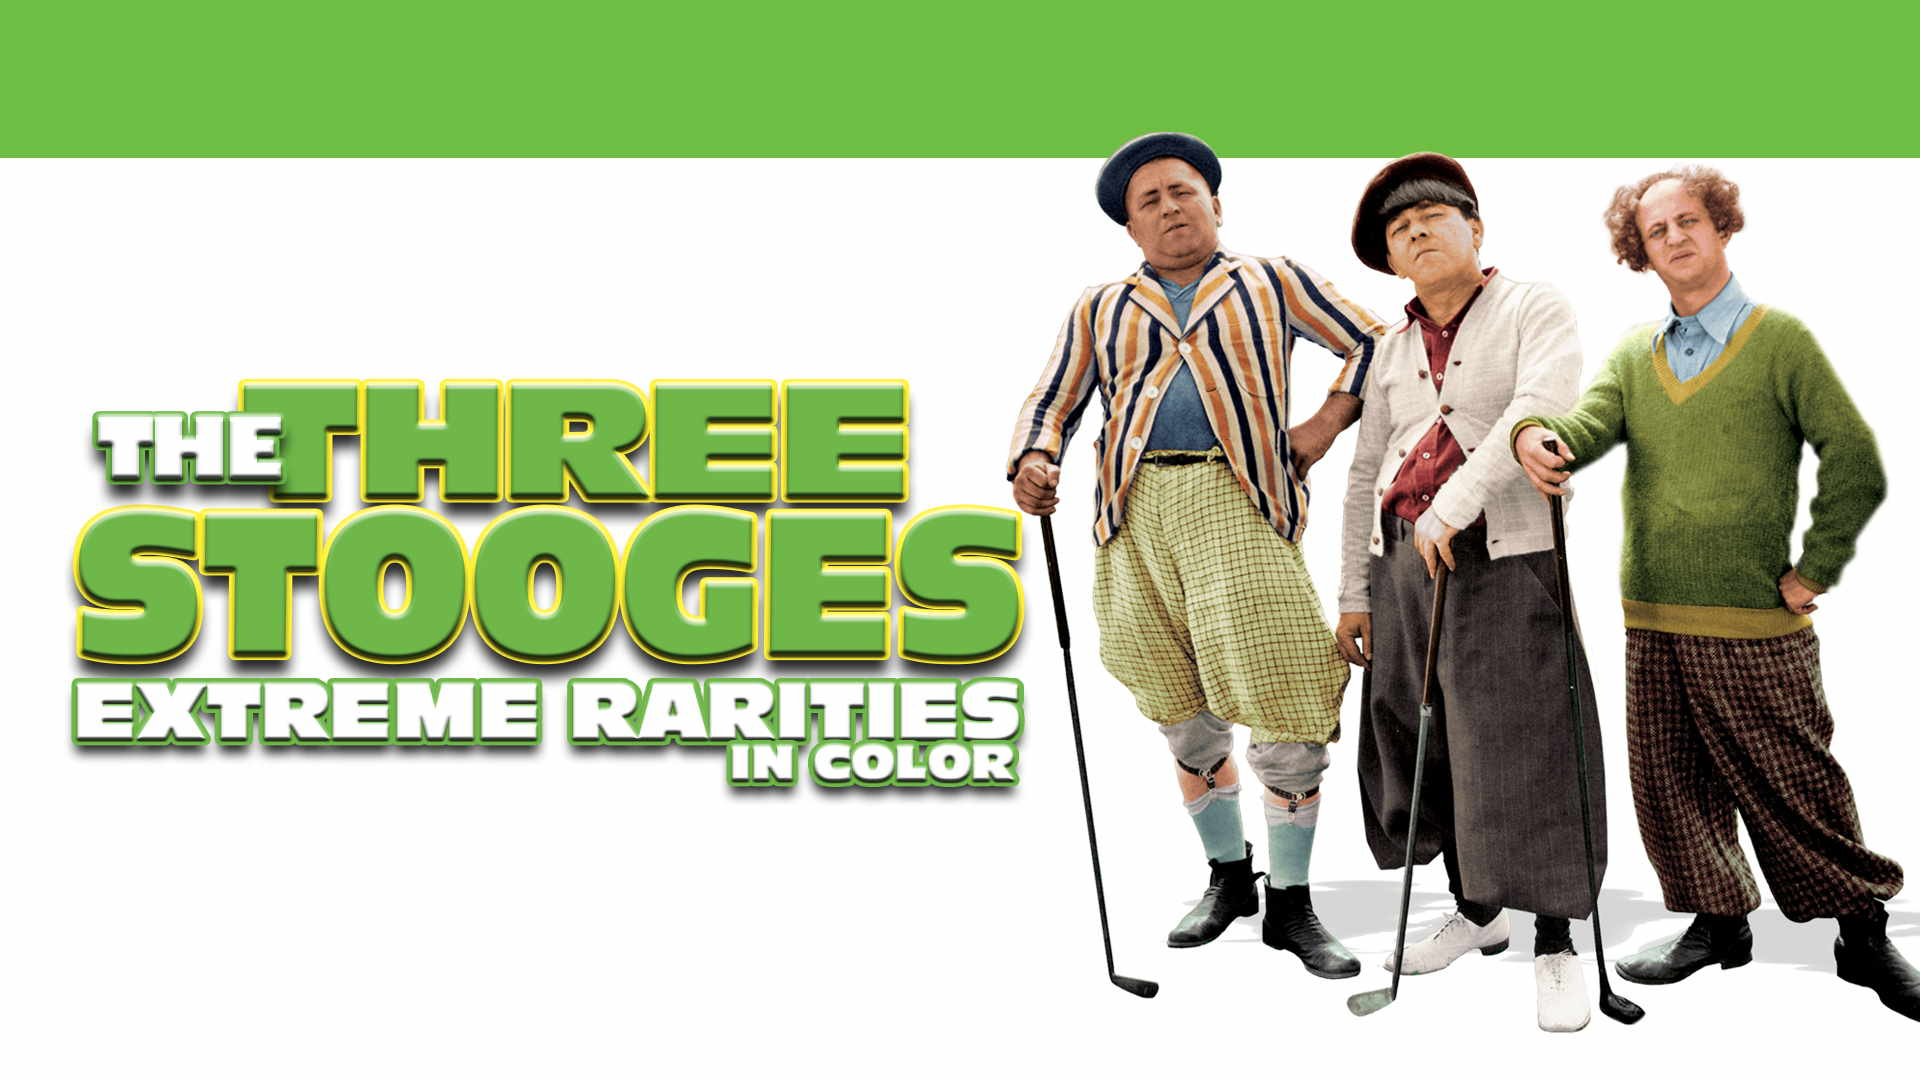 Three Stooges Extreme Rarities (In Color)